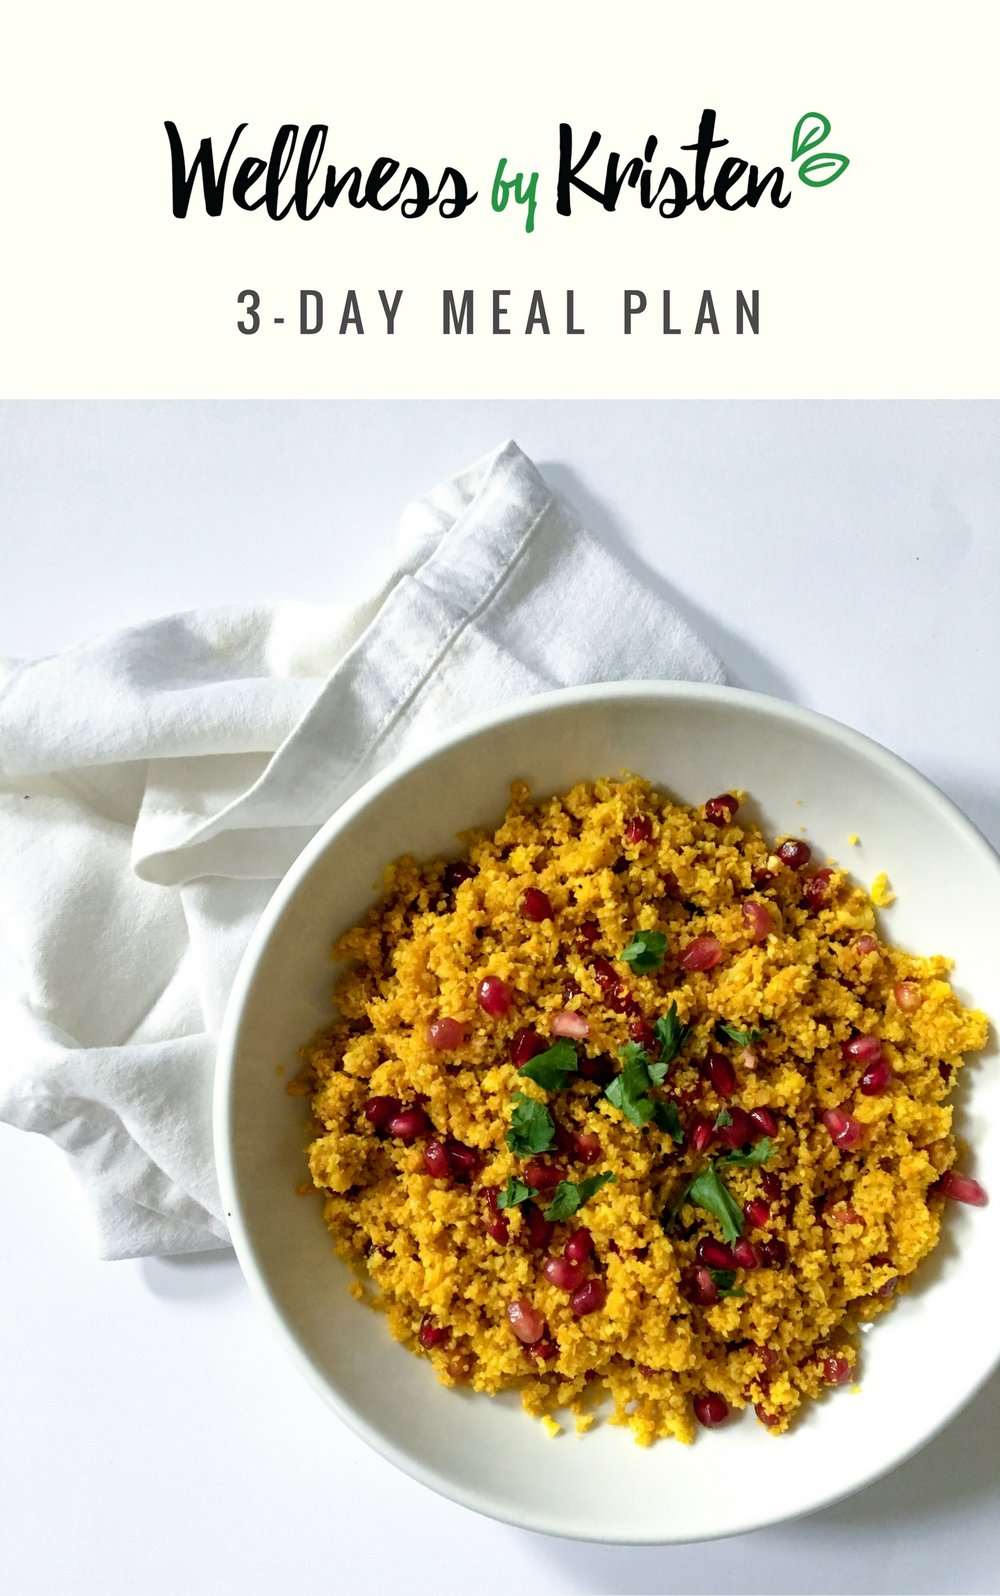 RECEIVE YOUR FREE 3-DAY MEAL PLAN Stop wondering what to cook everyday. Download your copy today and receive nine free, exclusive recipes plus my favorite meal planning tips! -